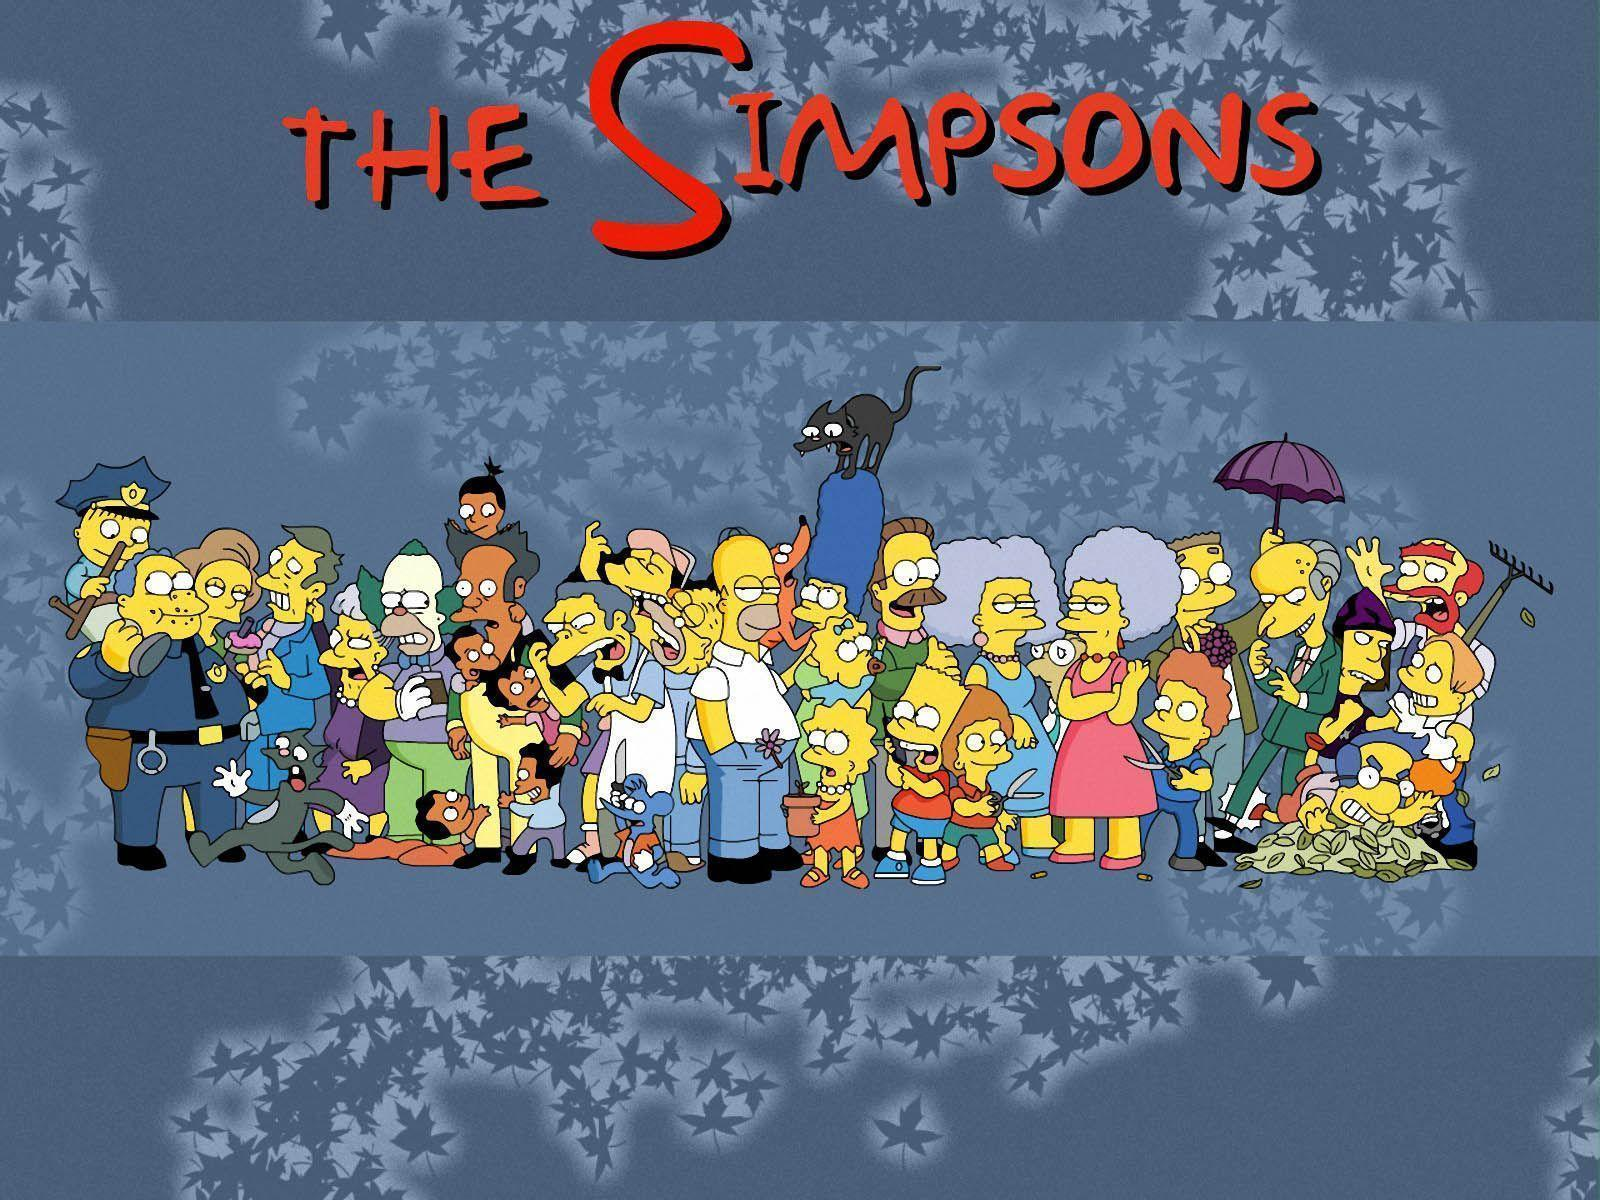 The Simpsons Wallpapers Wallpapers,The Simpsons Wallpapers